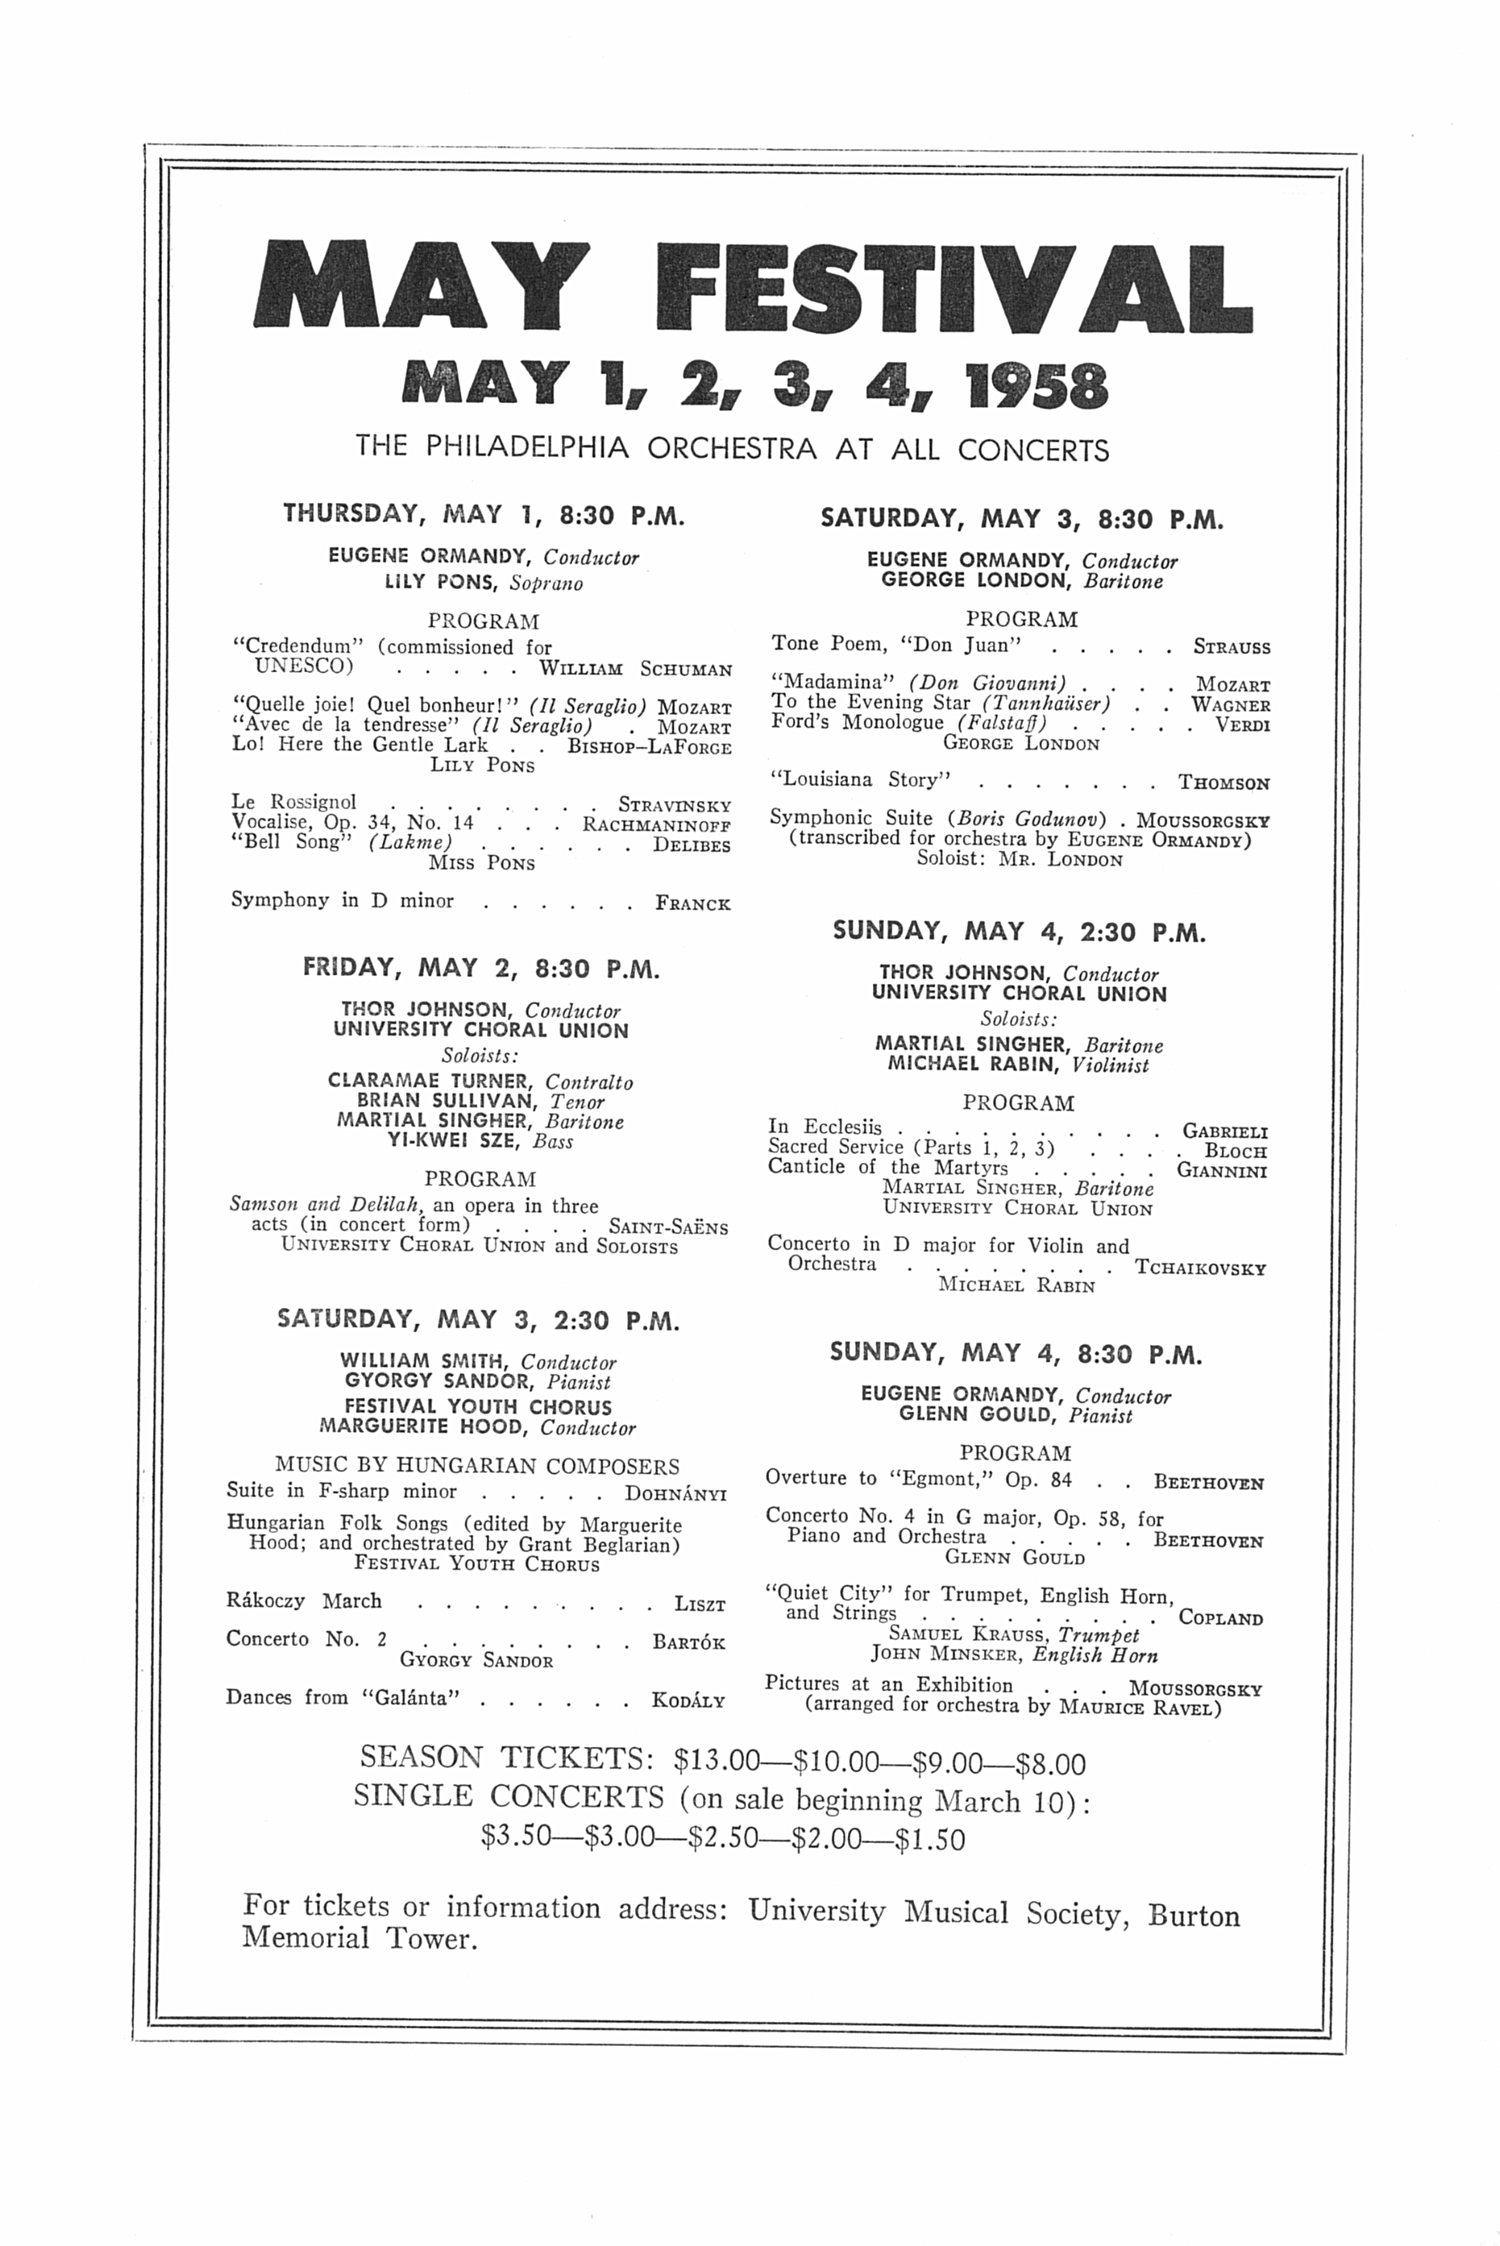 UMS Concert Program, March 2, 1958: Seventy-ninth Annual Choral Union Concert Series -- The Chicago Symphony Orchestra image